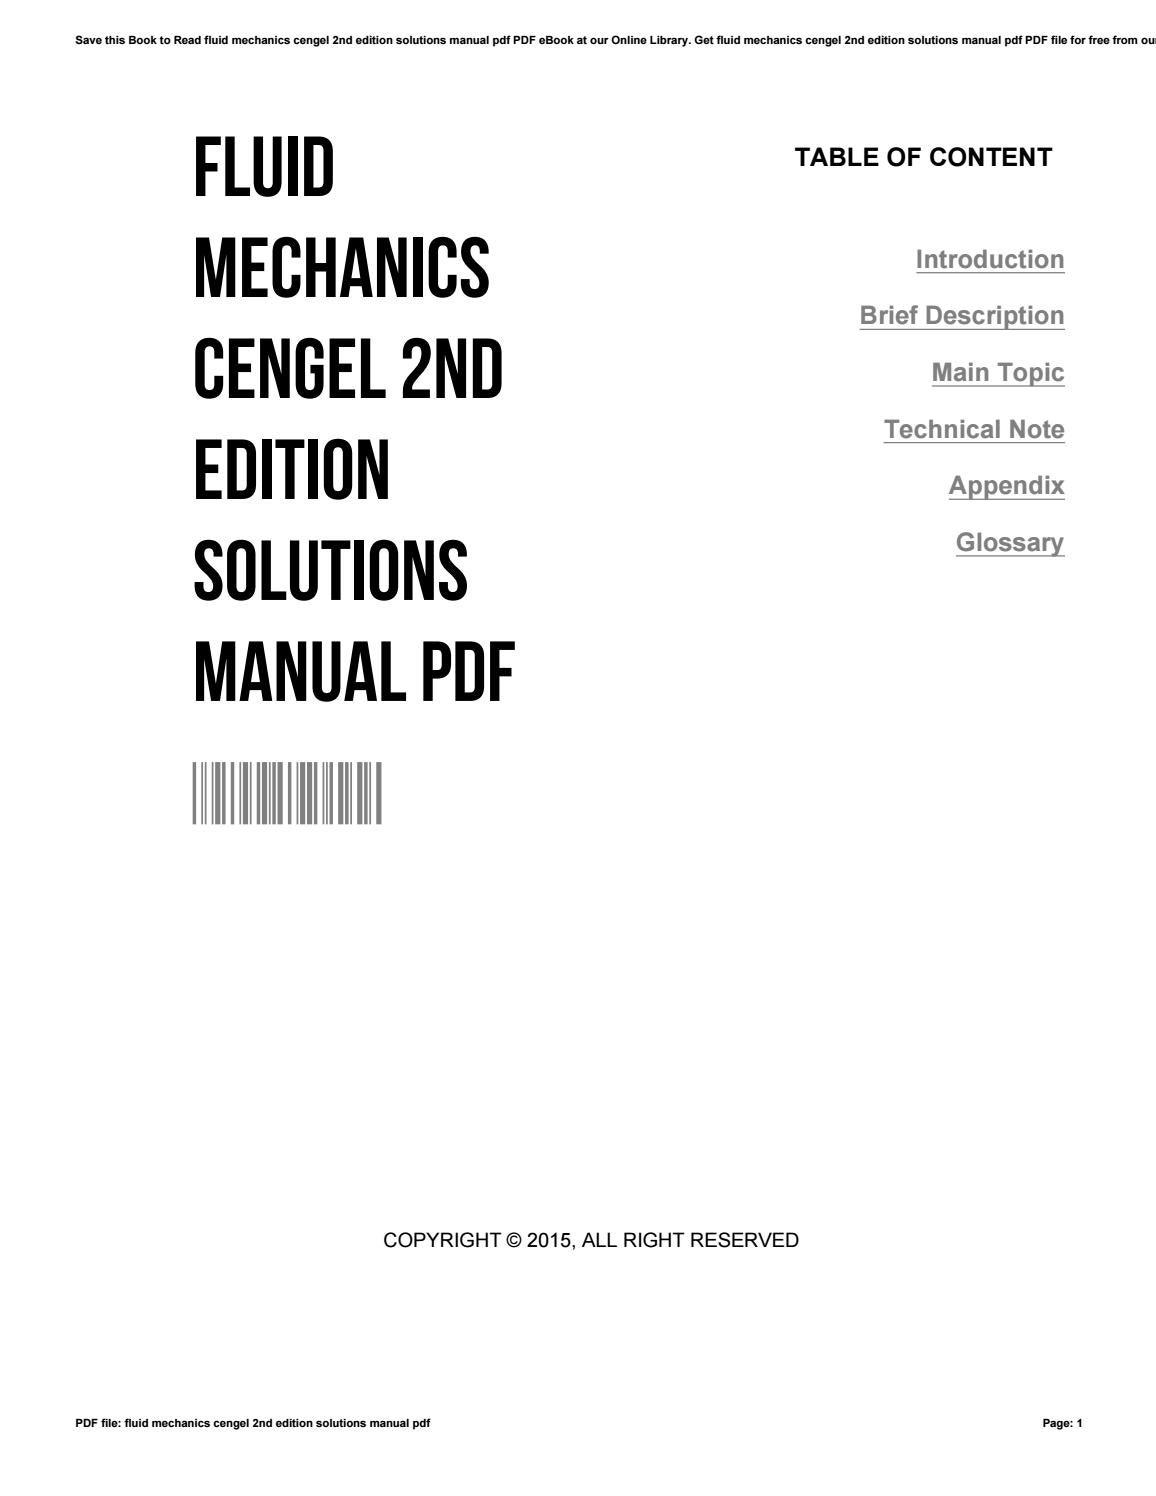 Fluid mechanics cengel 2nd edition solutions manual pdf by